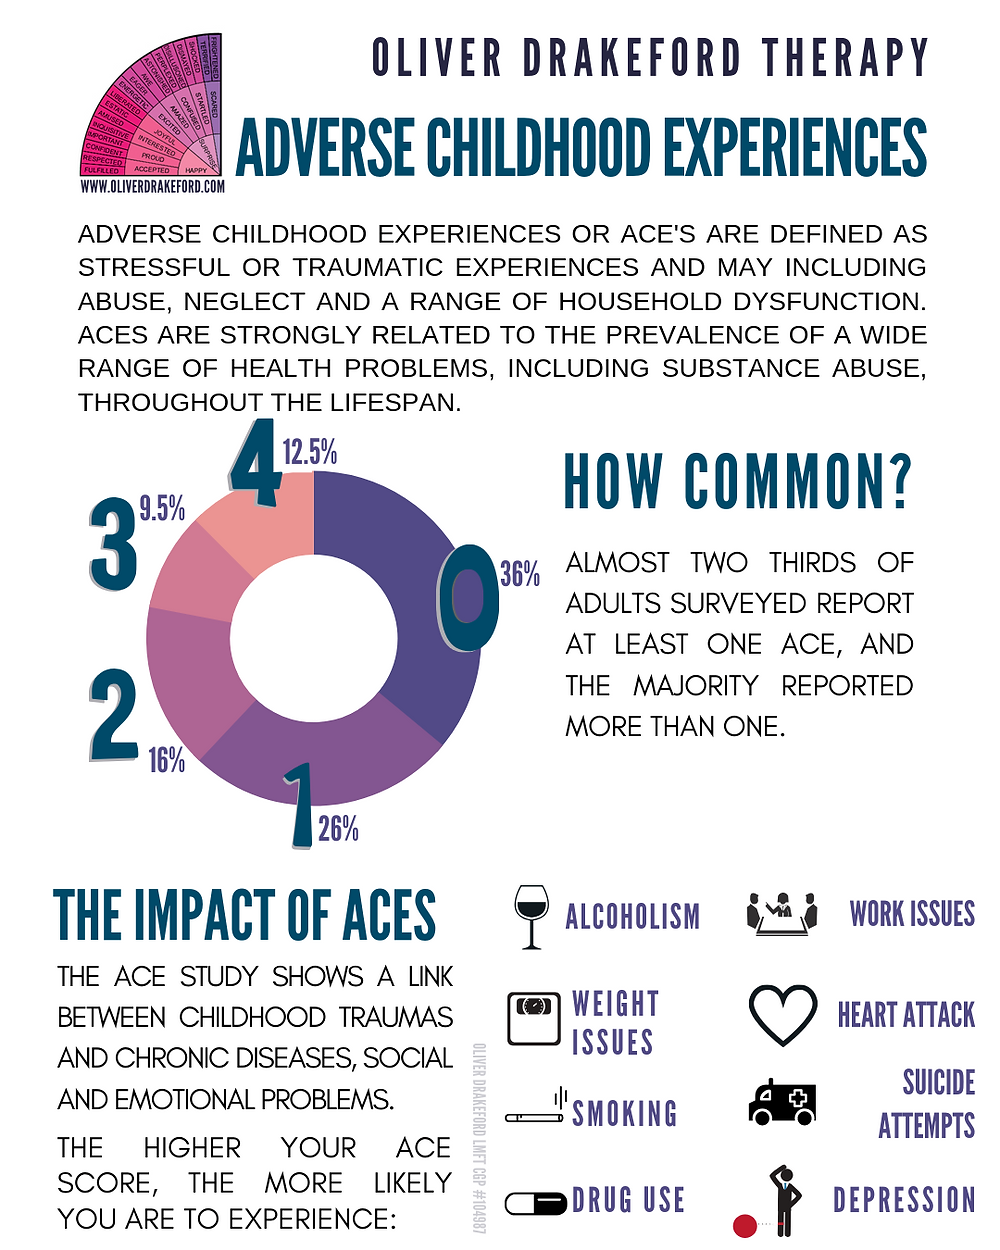 Adverse Childhood Experiences, trauma